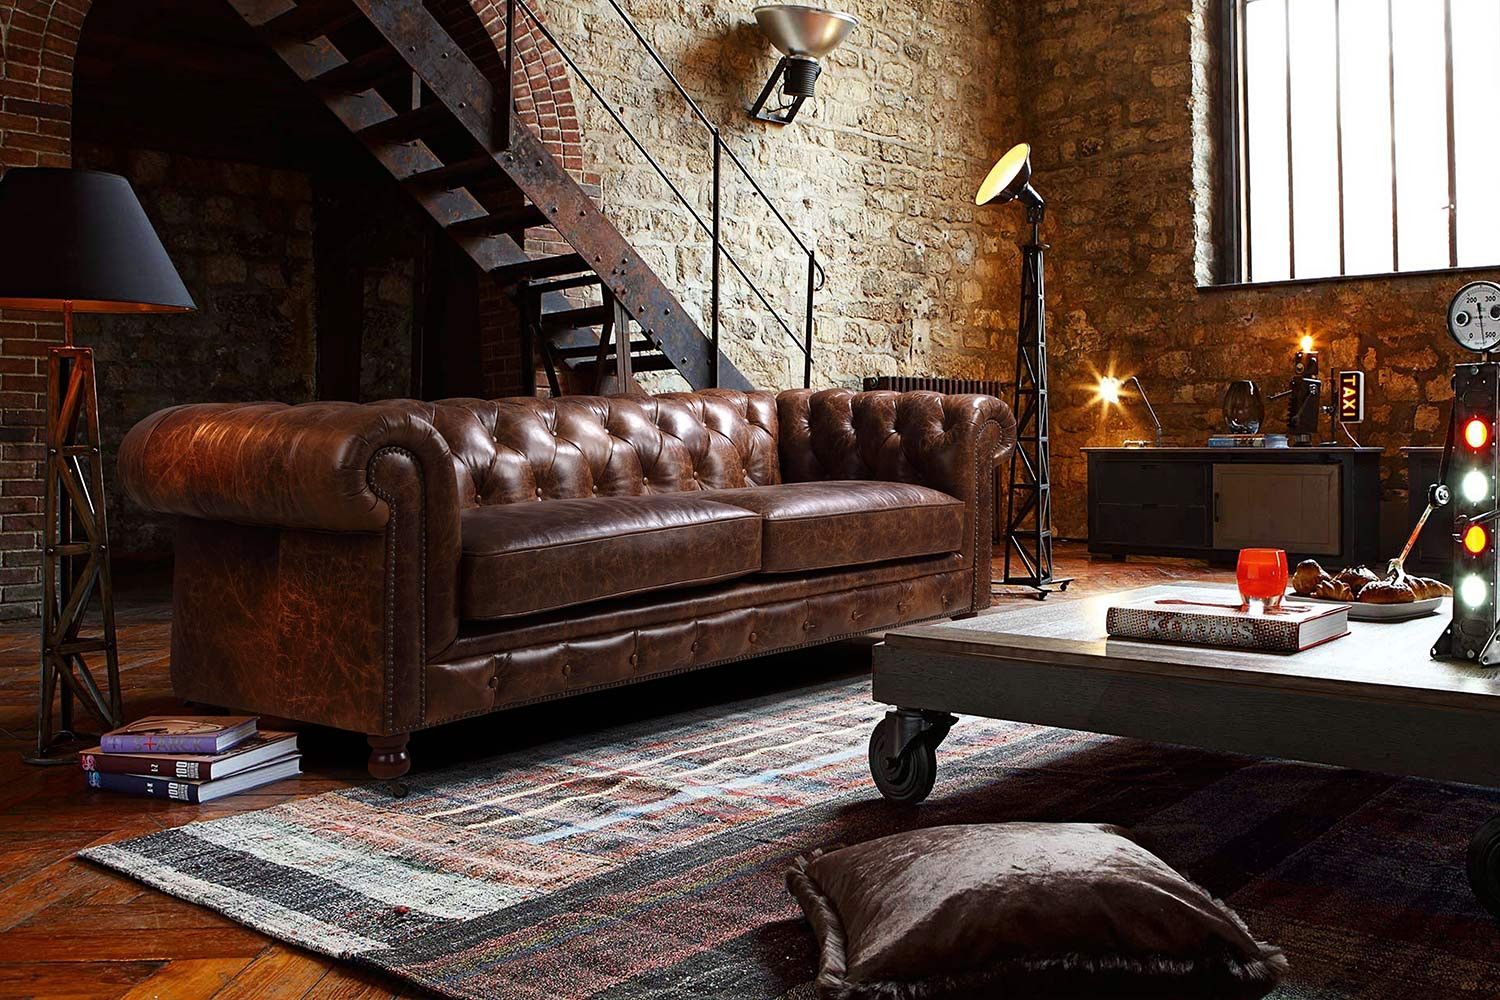 Kensington Chesterfield Leather Sofa By Rose U0026 Moore In An Industrial  Interior